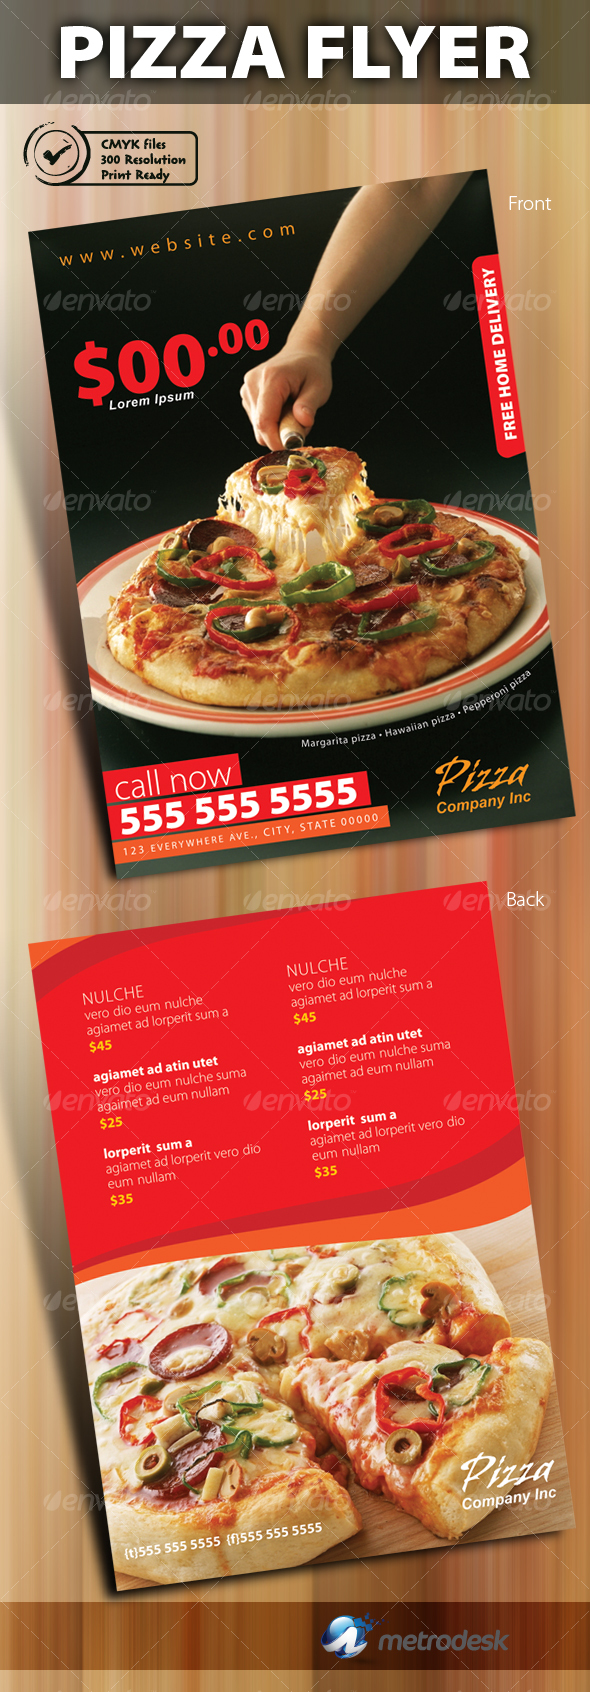 Print ready pizza menu flyer